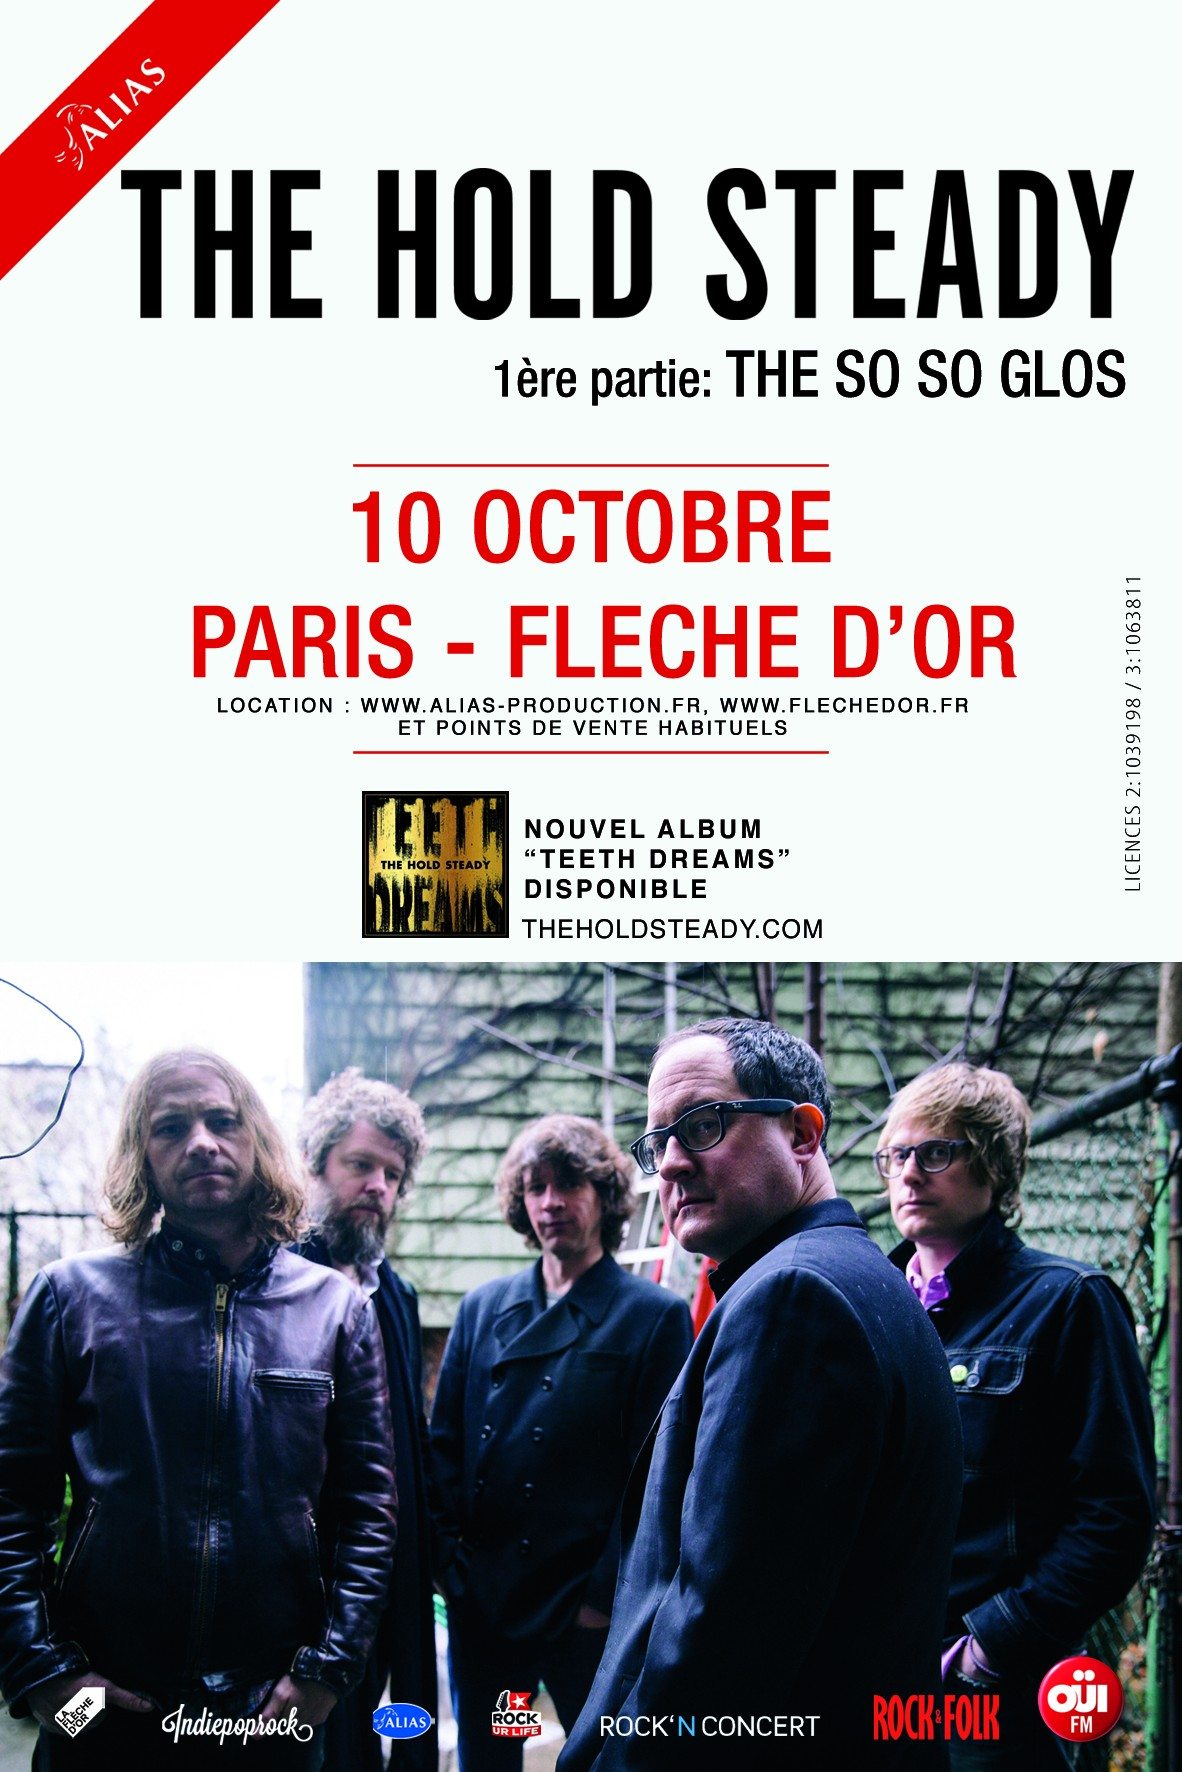 The hold steady Paris show artwork